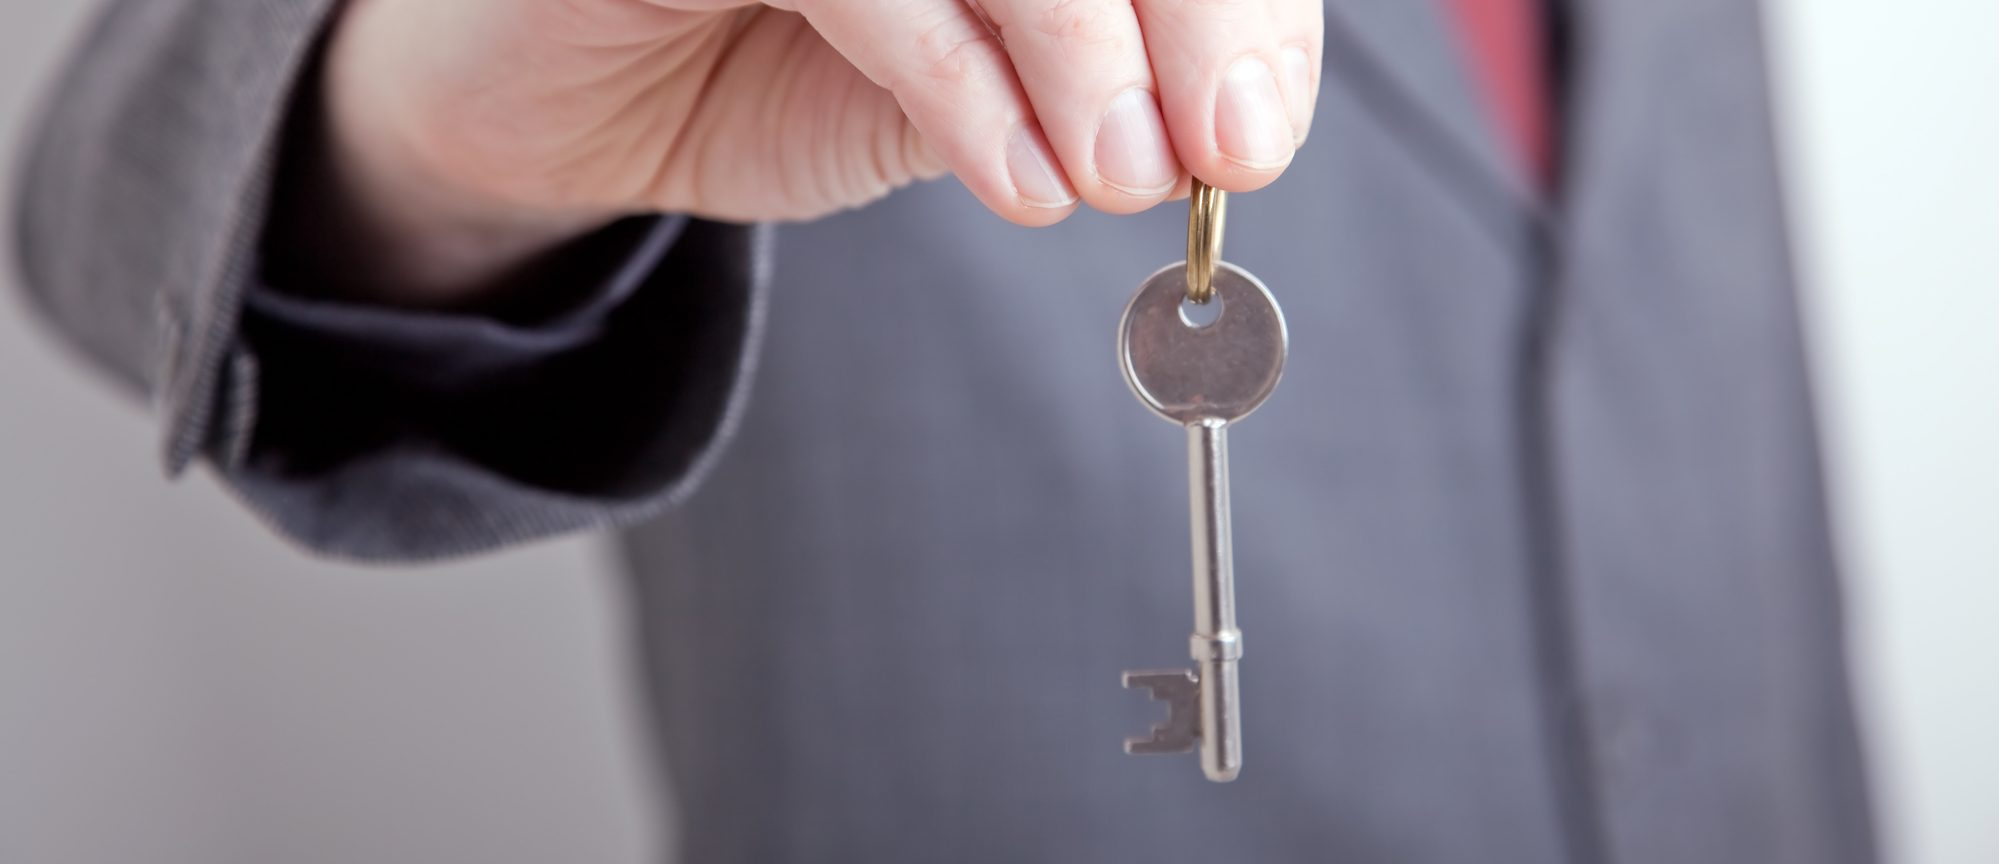 An image of someone holding a key